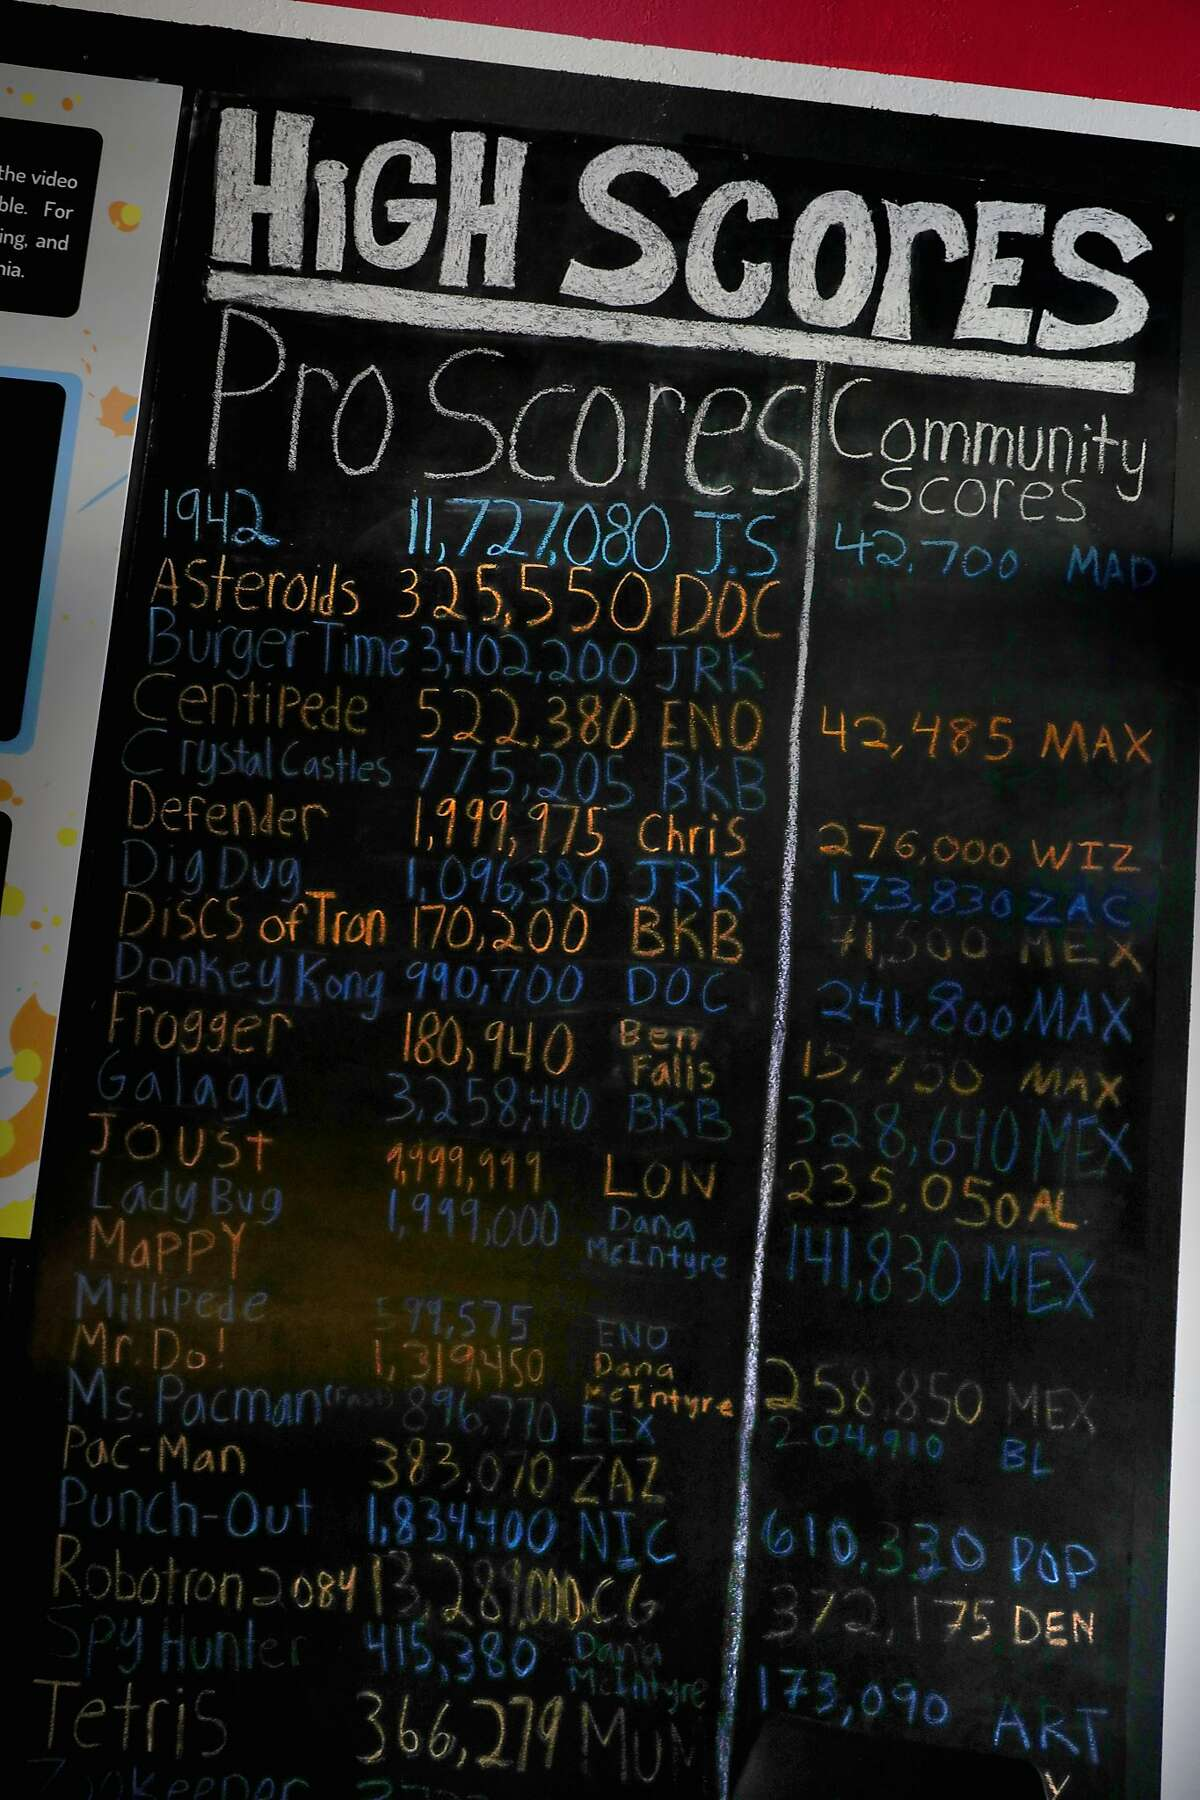 The high scores at High Scores have not changed since March.